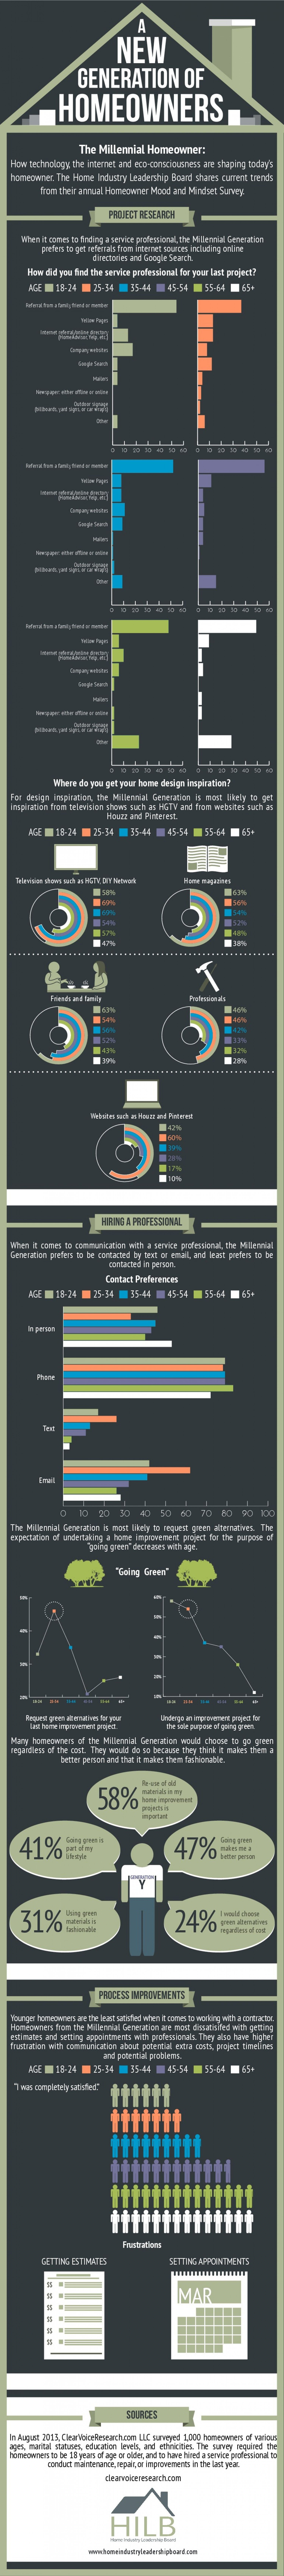 Infographic A New Generation Of Homeowners Get To Know The Millennial Homeowner Realestat Home Improvement Loans Real Estate Tips Real Estate Infographic